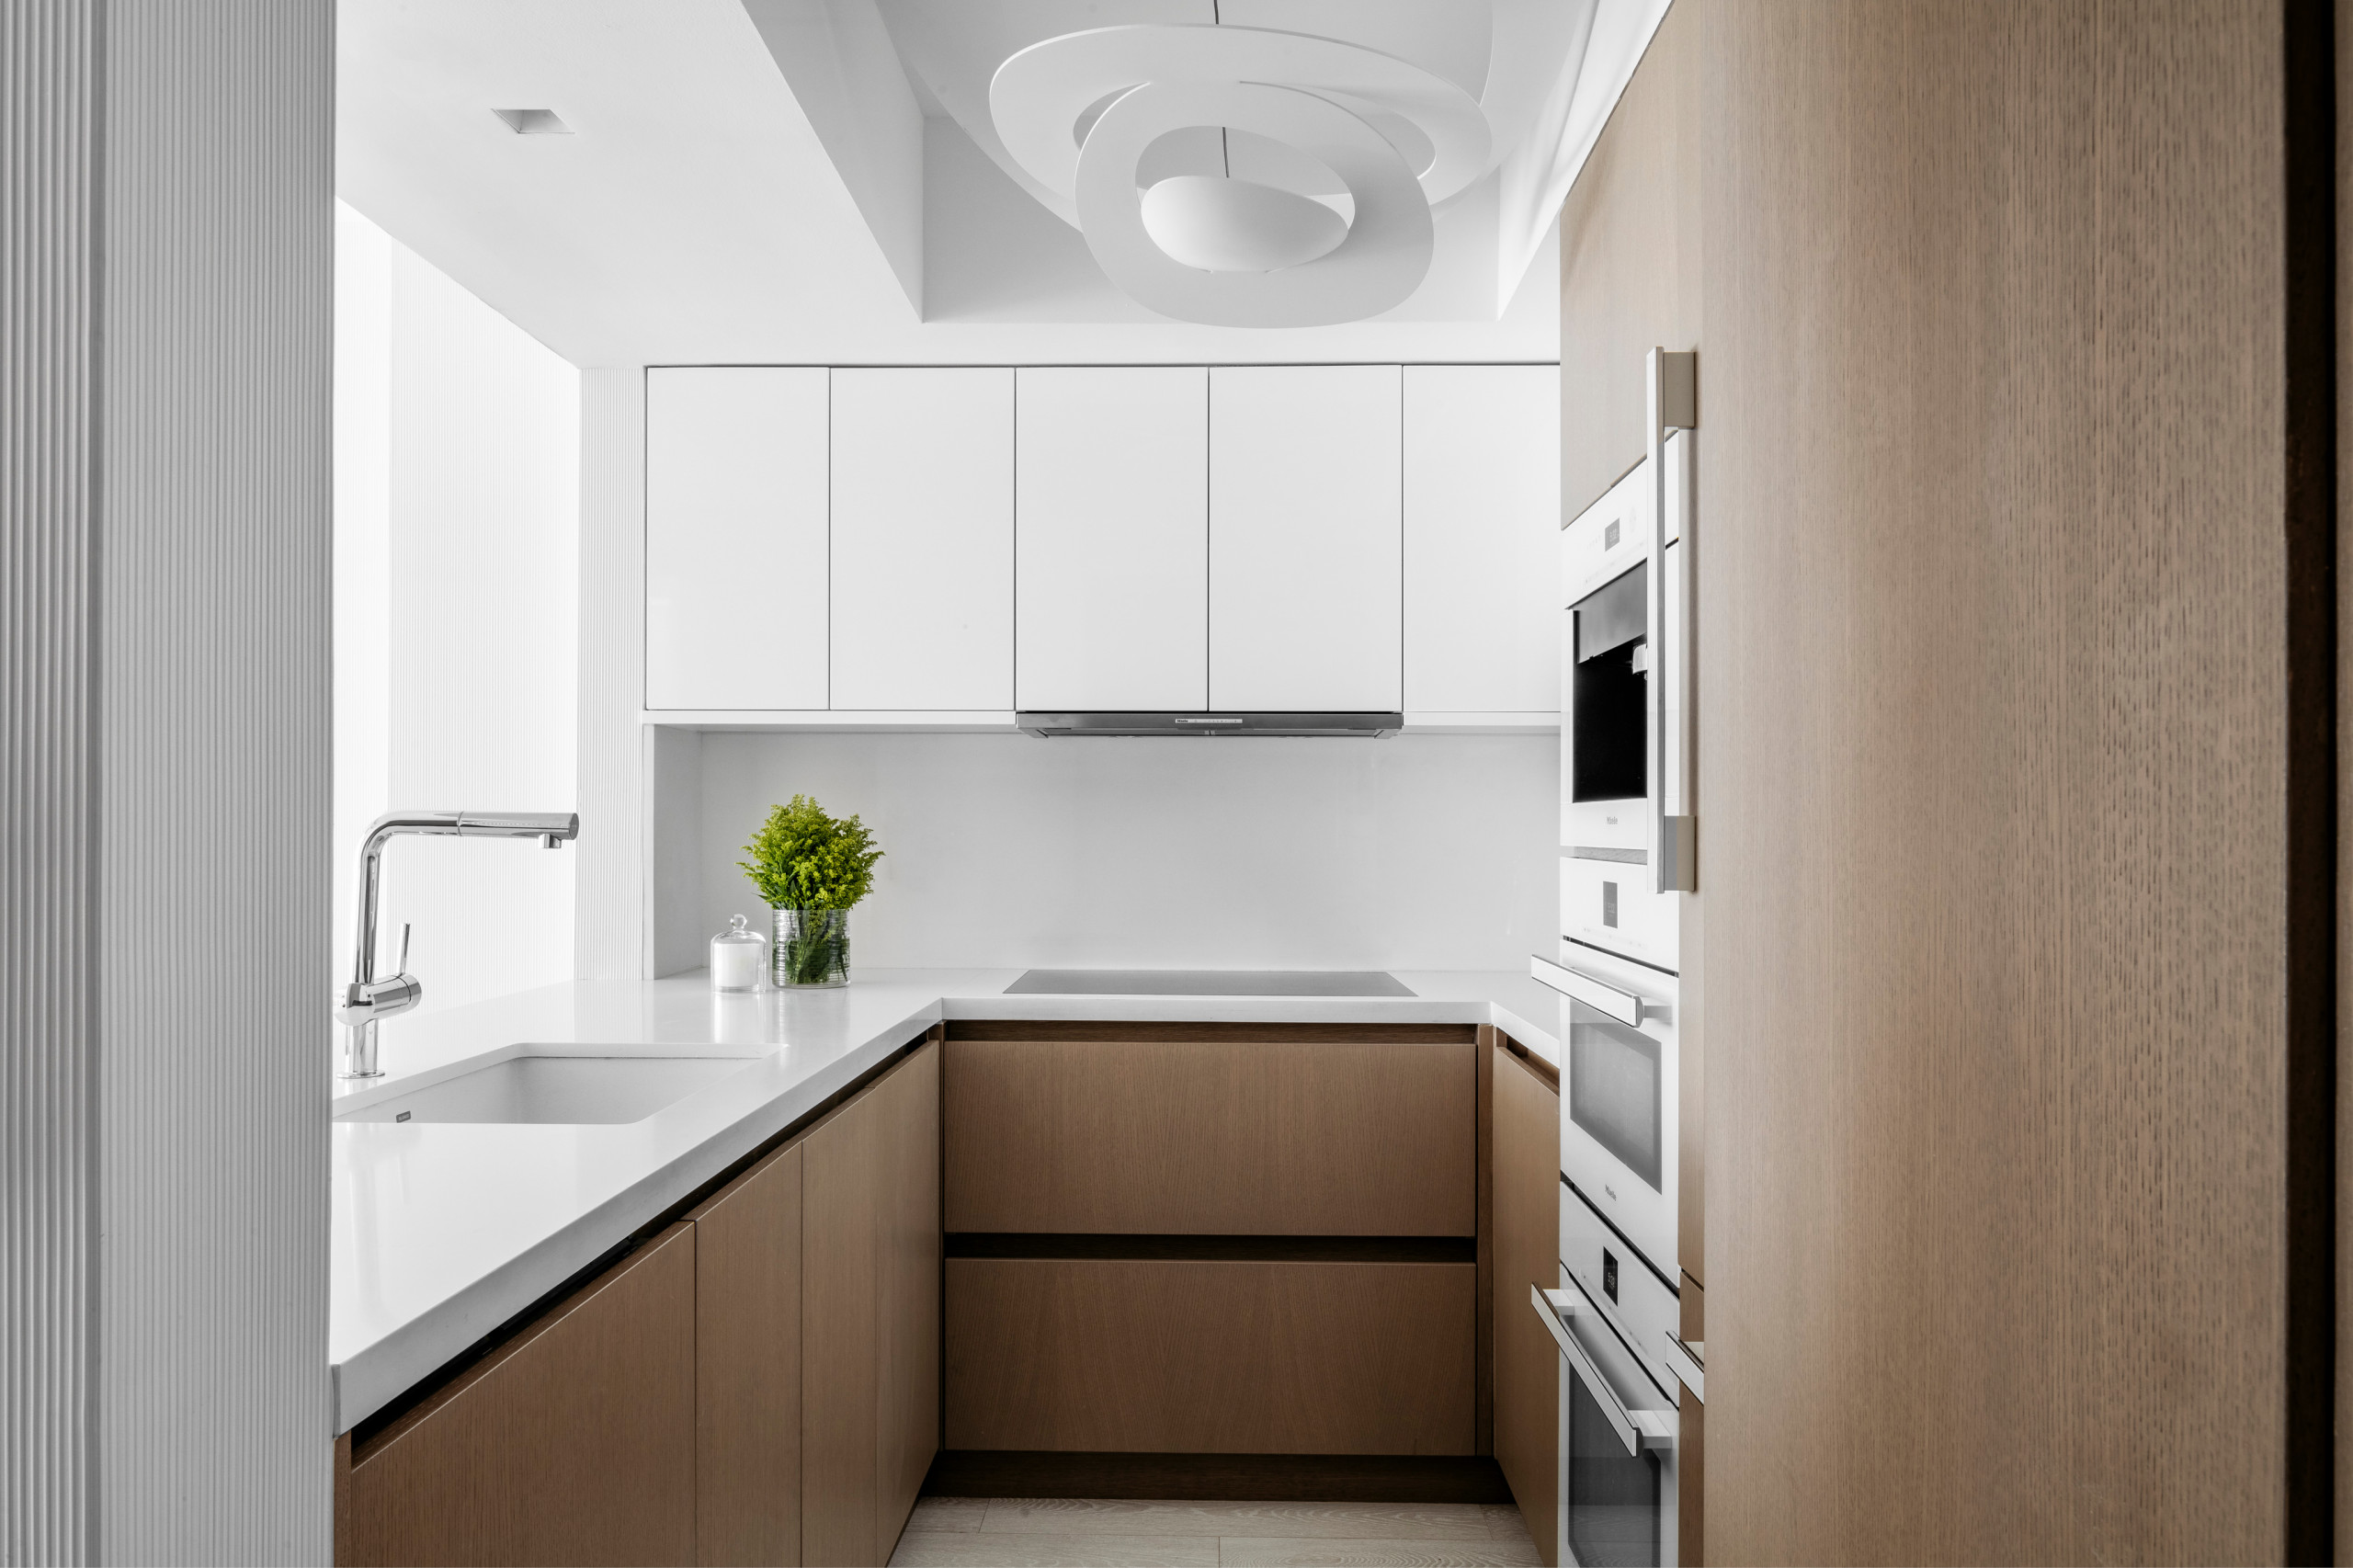 75 Beautiful Kitchen With Medium Tone Wood Cabinets And White Appliances Pictures Ideas December 2020 Houzz